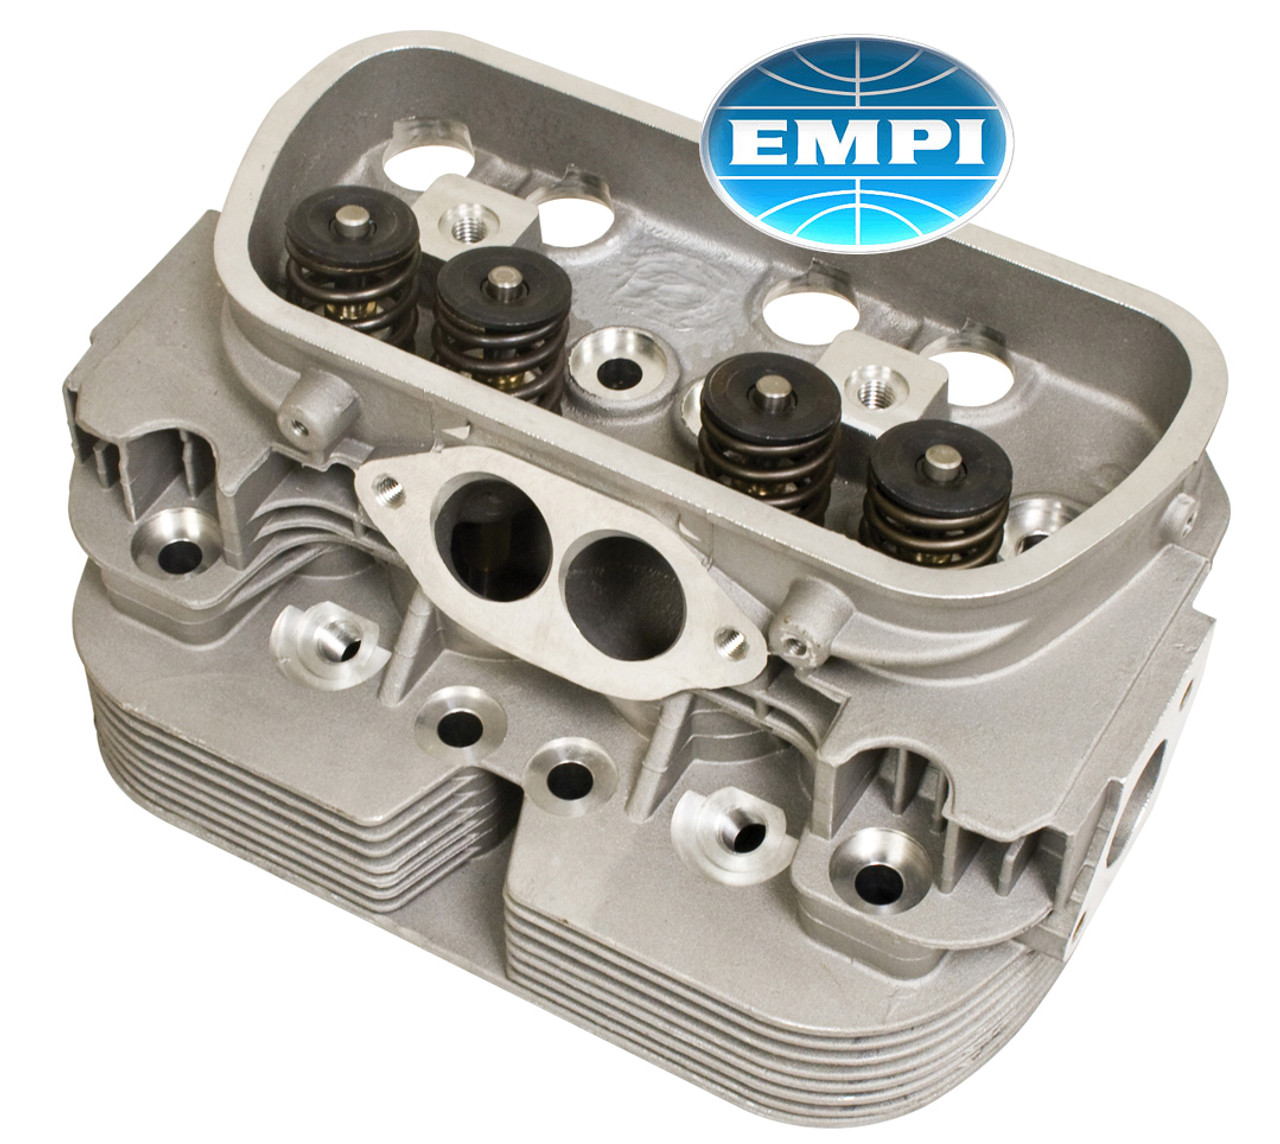 New VW Empi Stock Replacement Cylinder Head 85 5 mm